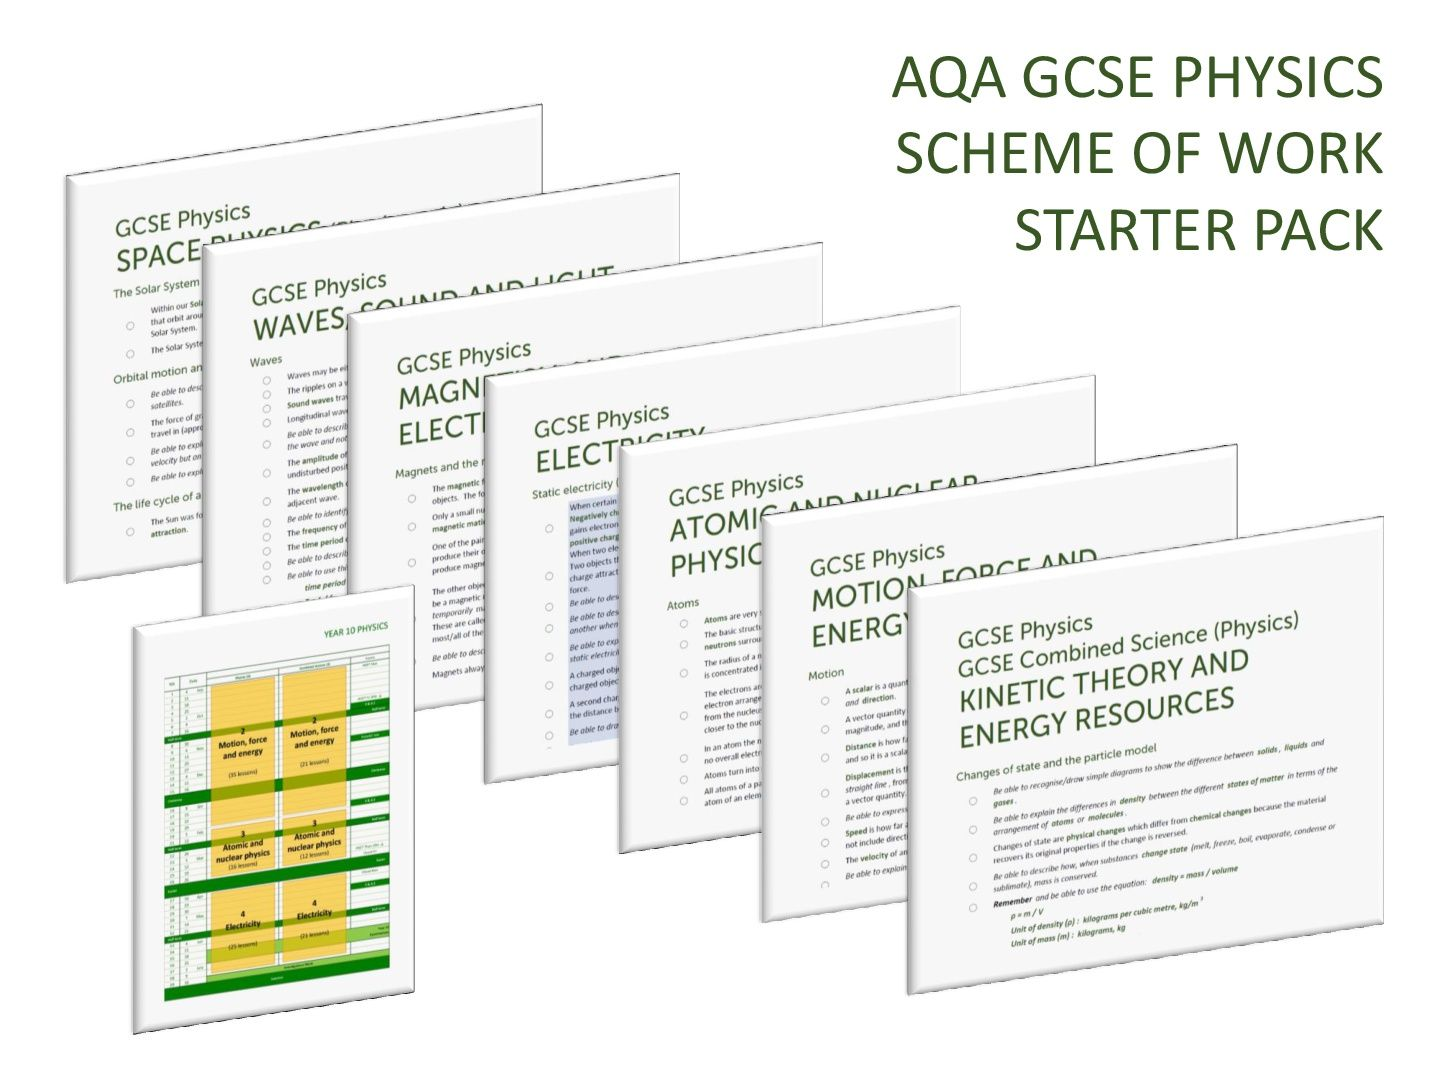 PHYSICS SCHEME OF WORK STARTER PACK for AQA GCSE Physics